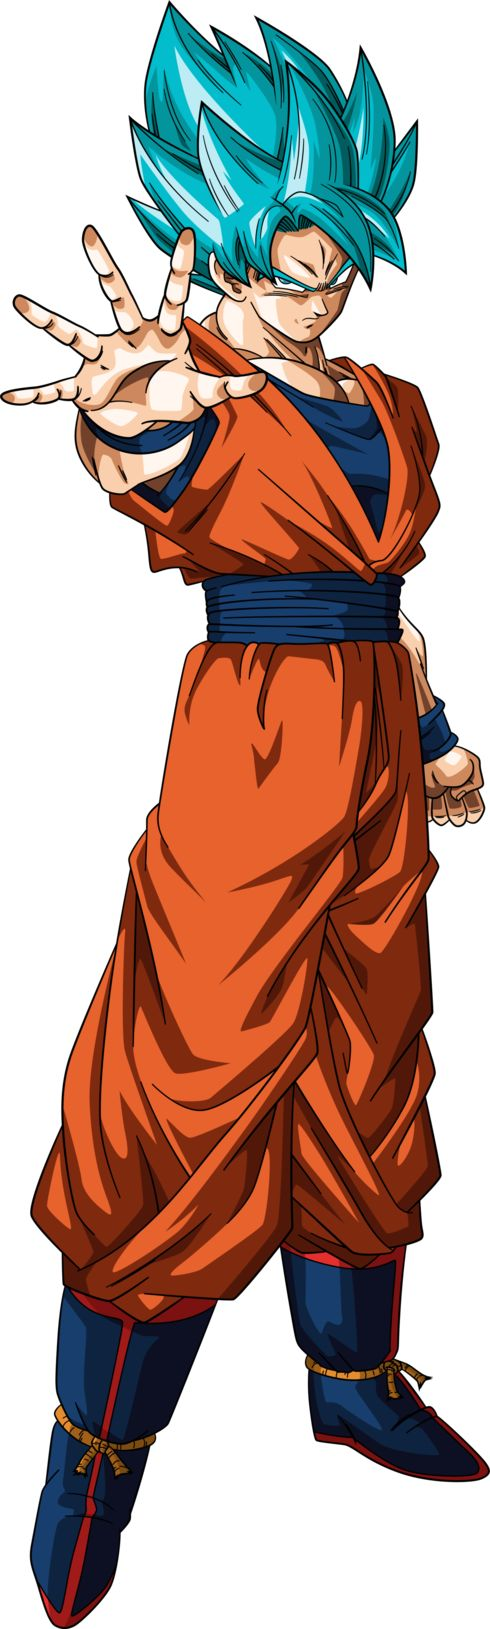 The main protagonist and hero of the Dragon Ball manga series and animated television series created by Akira Toriyama. He is one of the survivors of the extinct Saiyan race. He was sent as a baby to planet Earth in order to destroy it. When he arrived he was a violent kid, due to his warrior nature. However, he suffered an accident which made him lose his memory. He became a kind and calm kid. Trained, he became a talented martial artist and world's greatest defender.